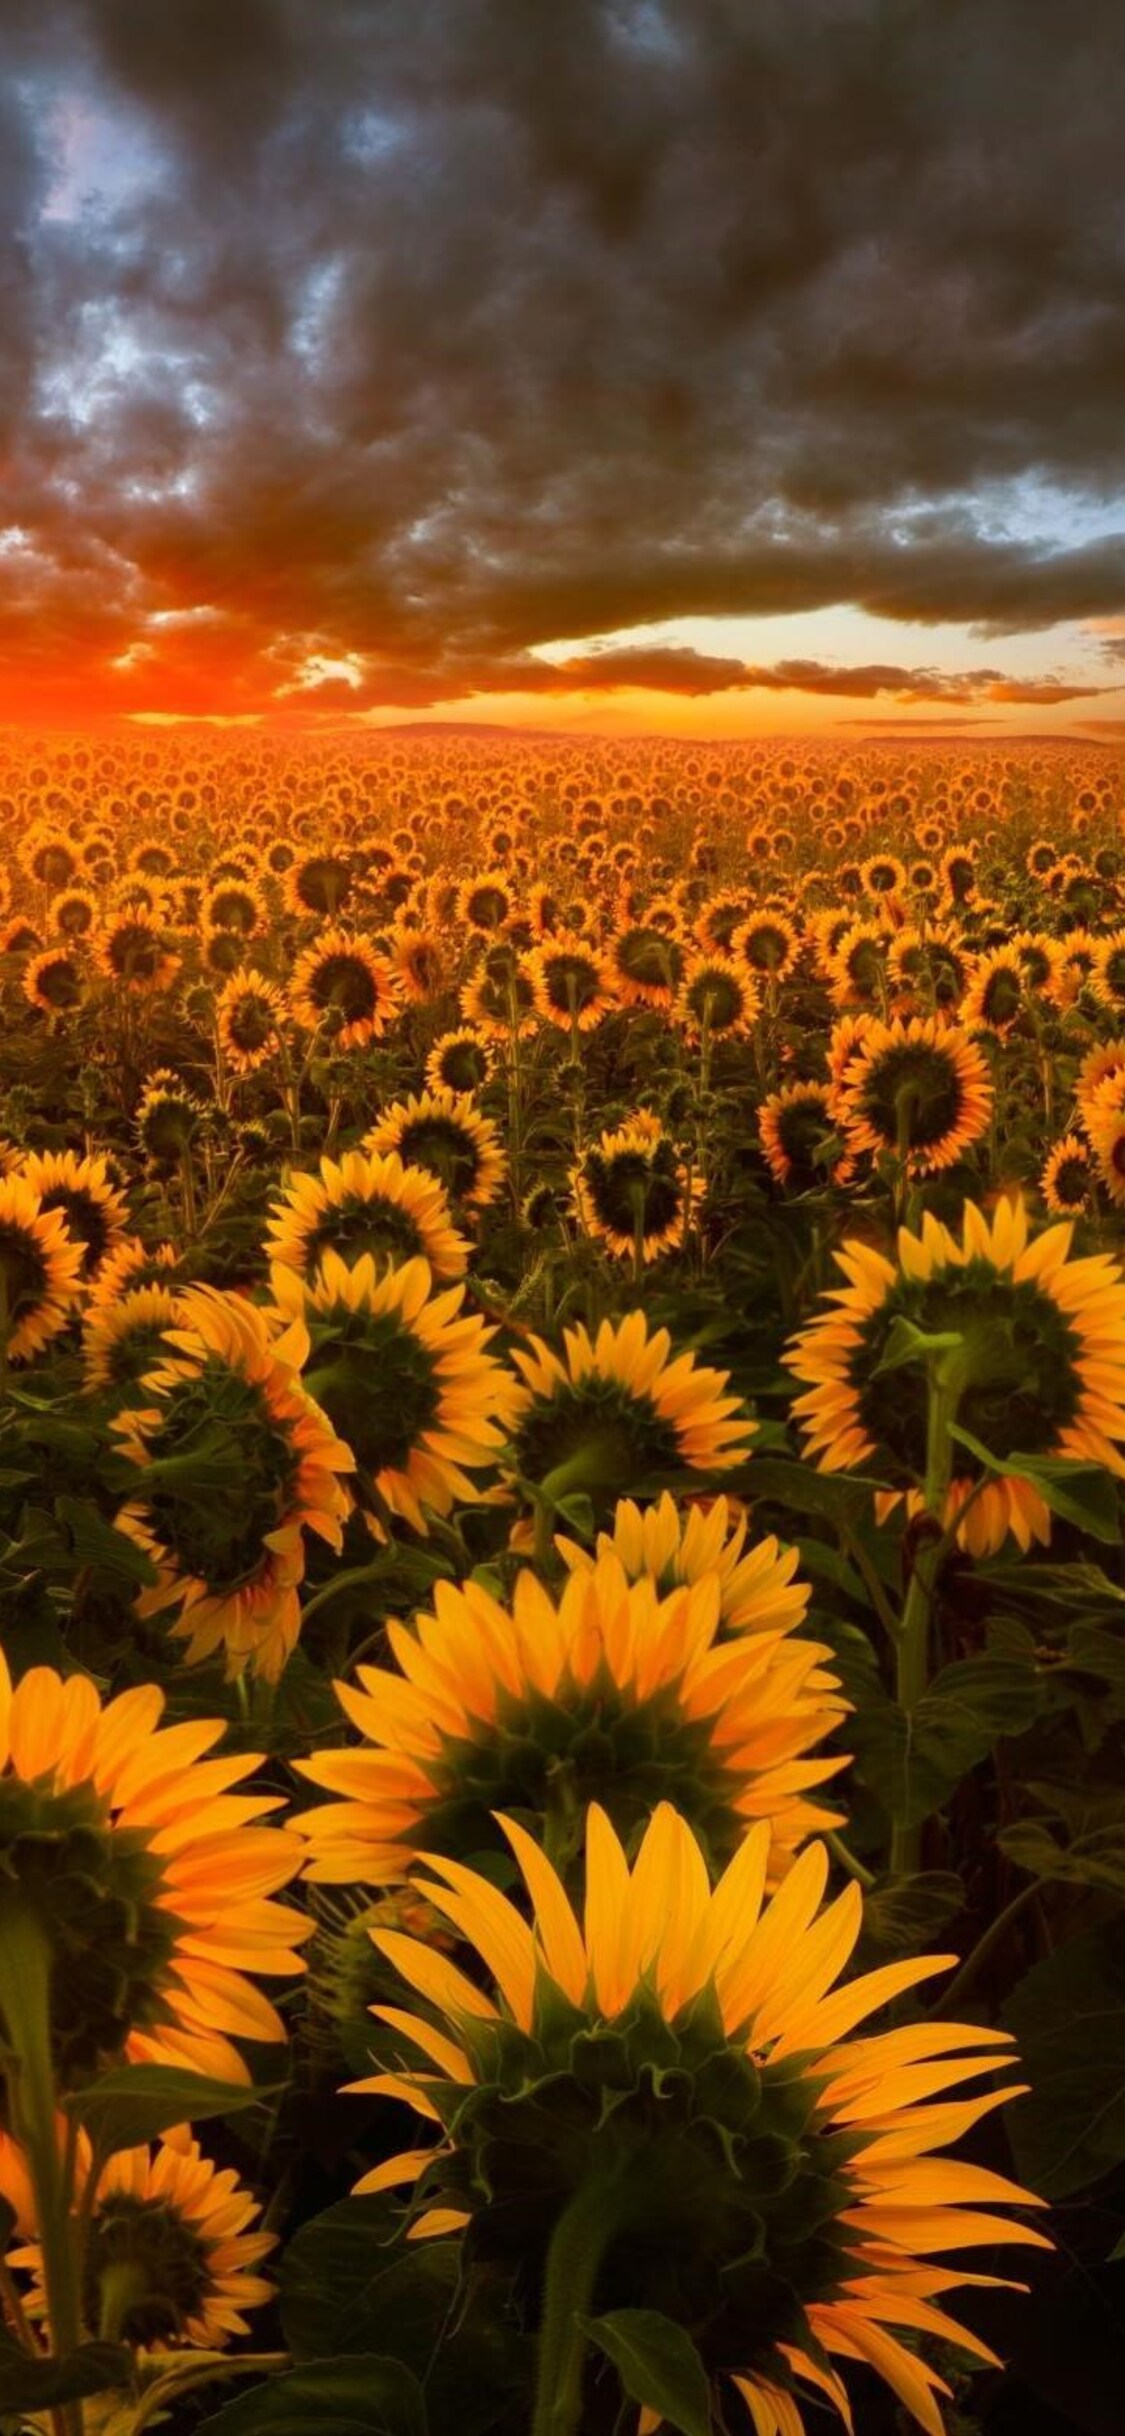 1125x2436 Sunflower Field Iphone XIphone 10 HD 4k Wallpapers